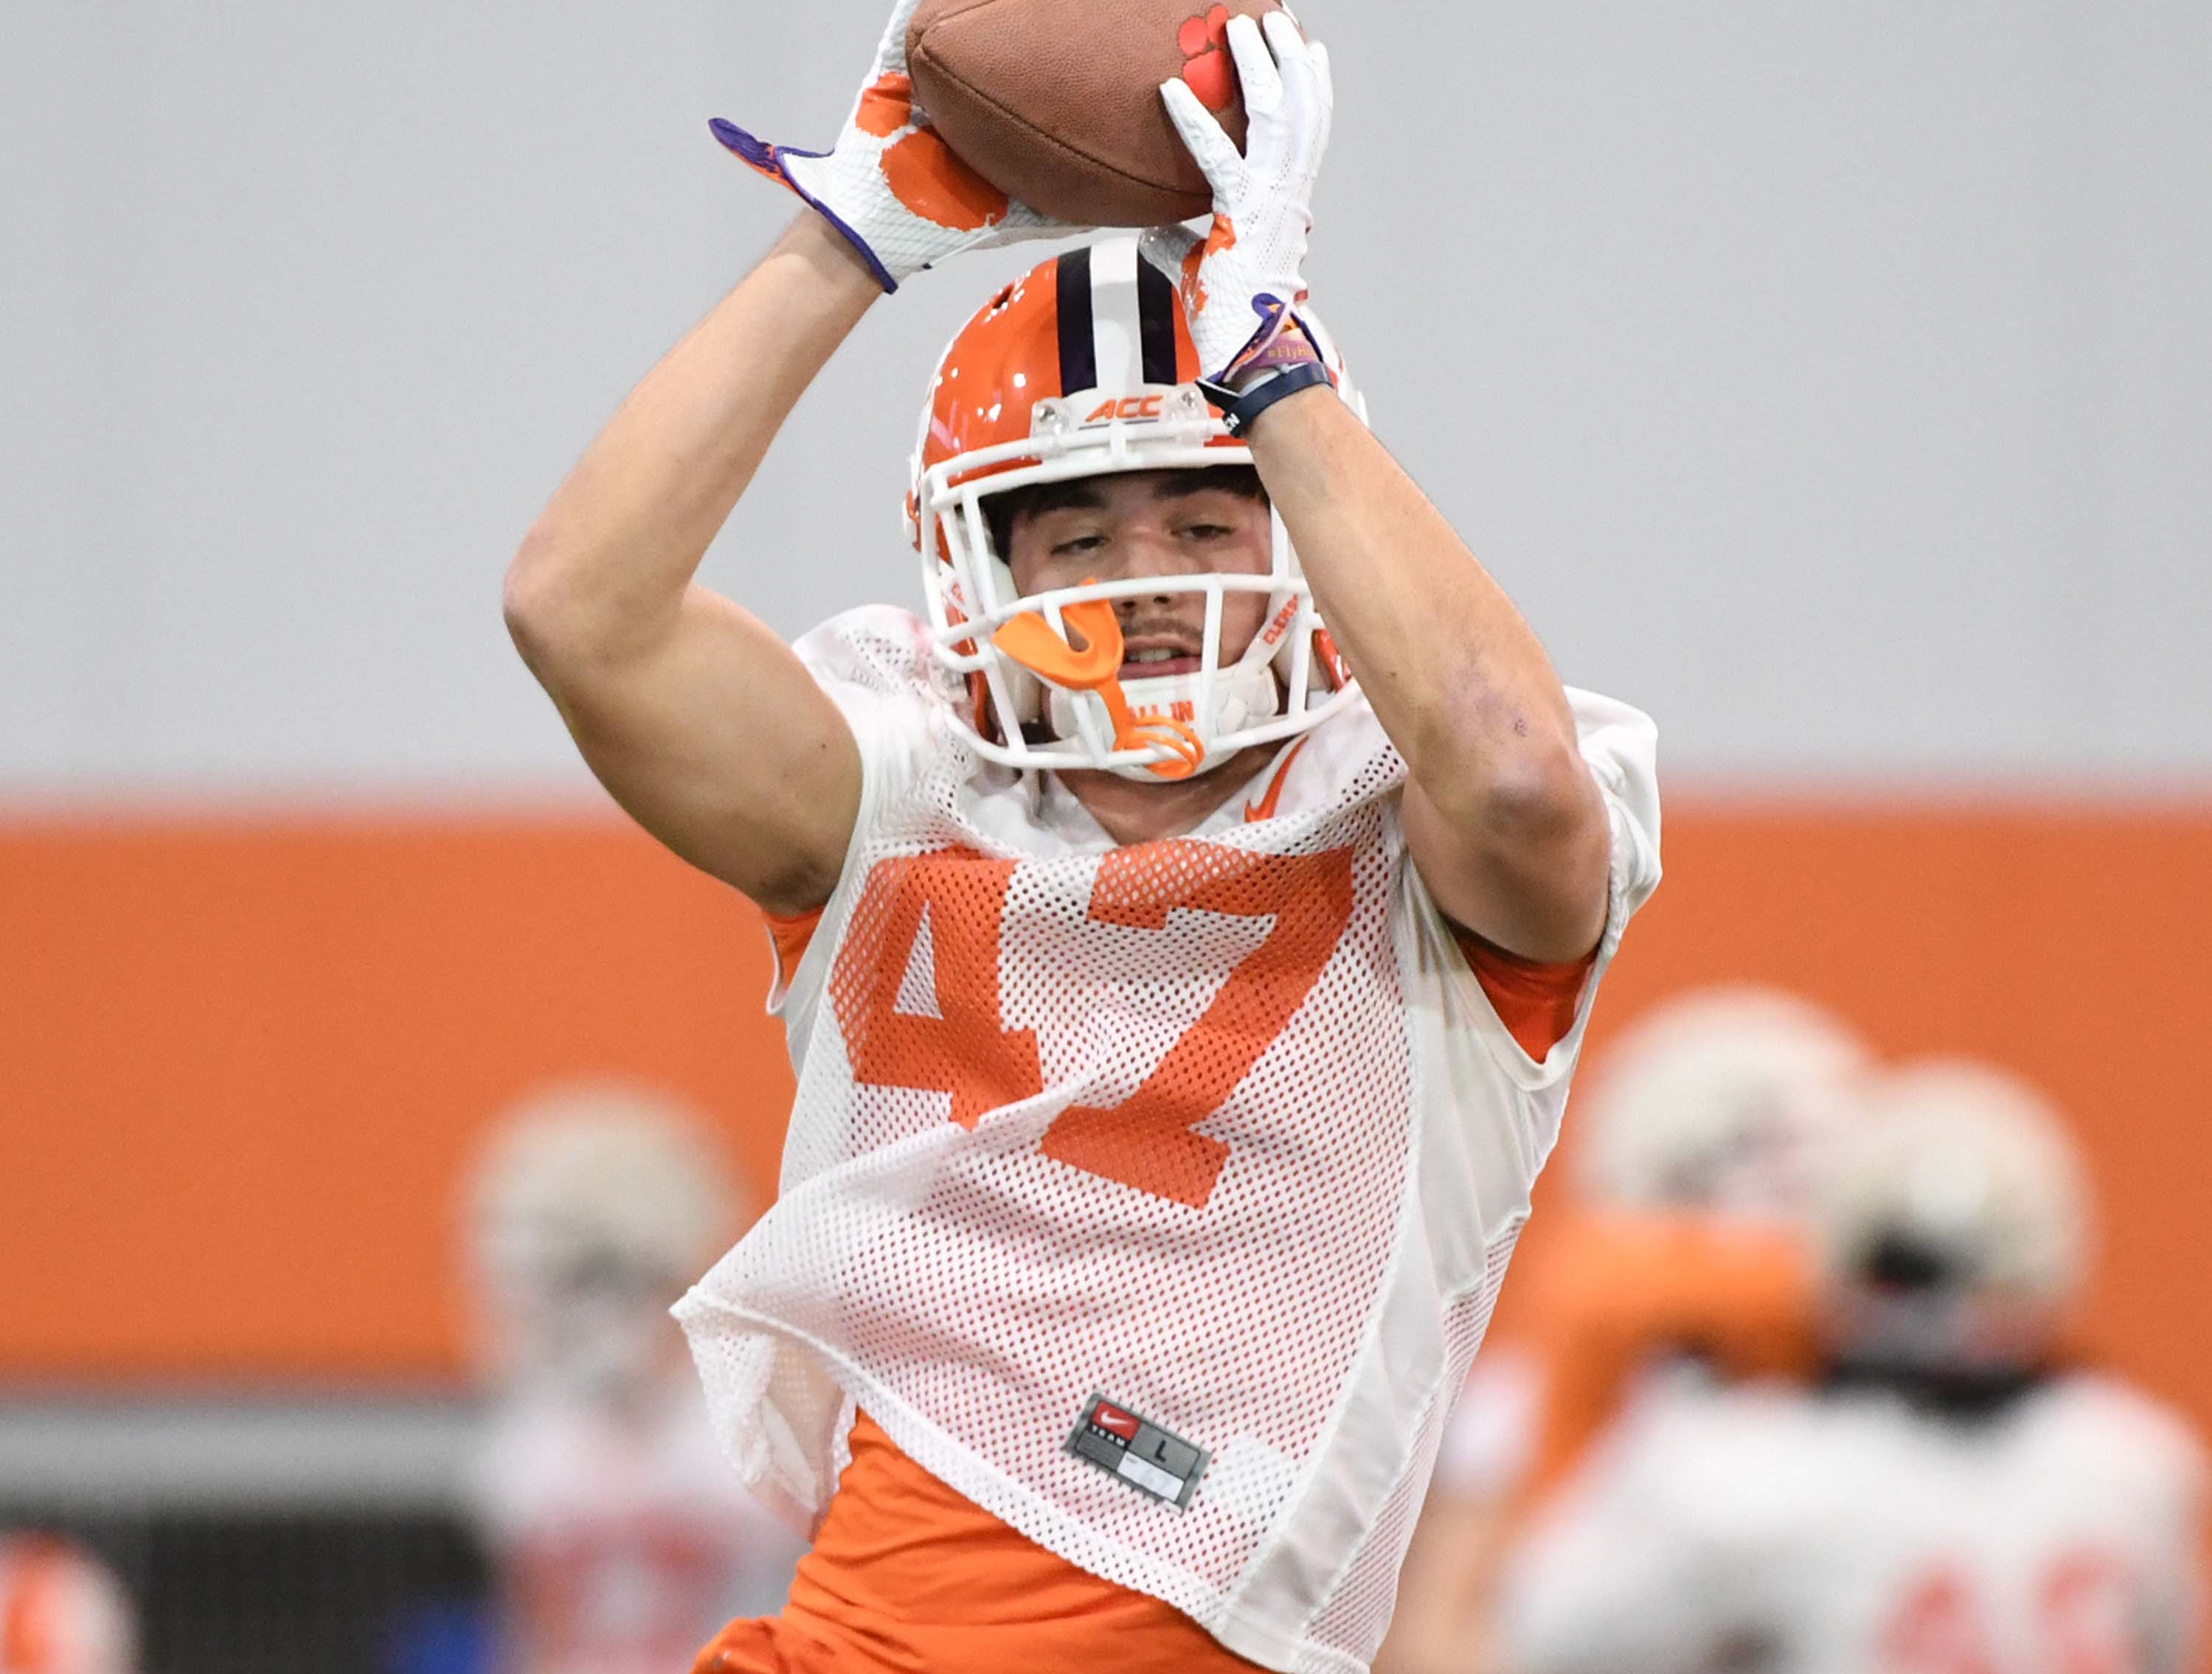 Clemson linebacker James Skalski (47) catches a ball during the first practice at the Clemson Indoor Practice Facility in Clemson Wednesday, February 27, 2019.